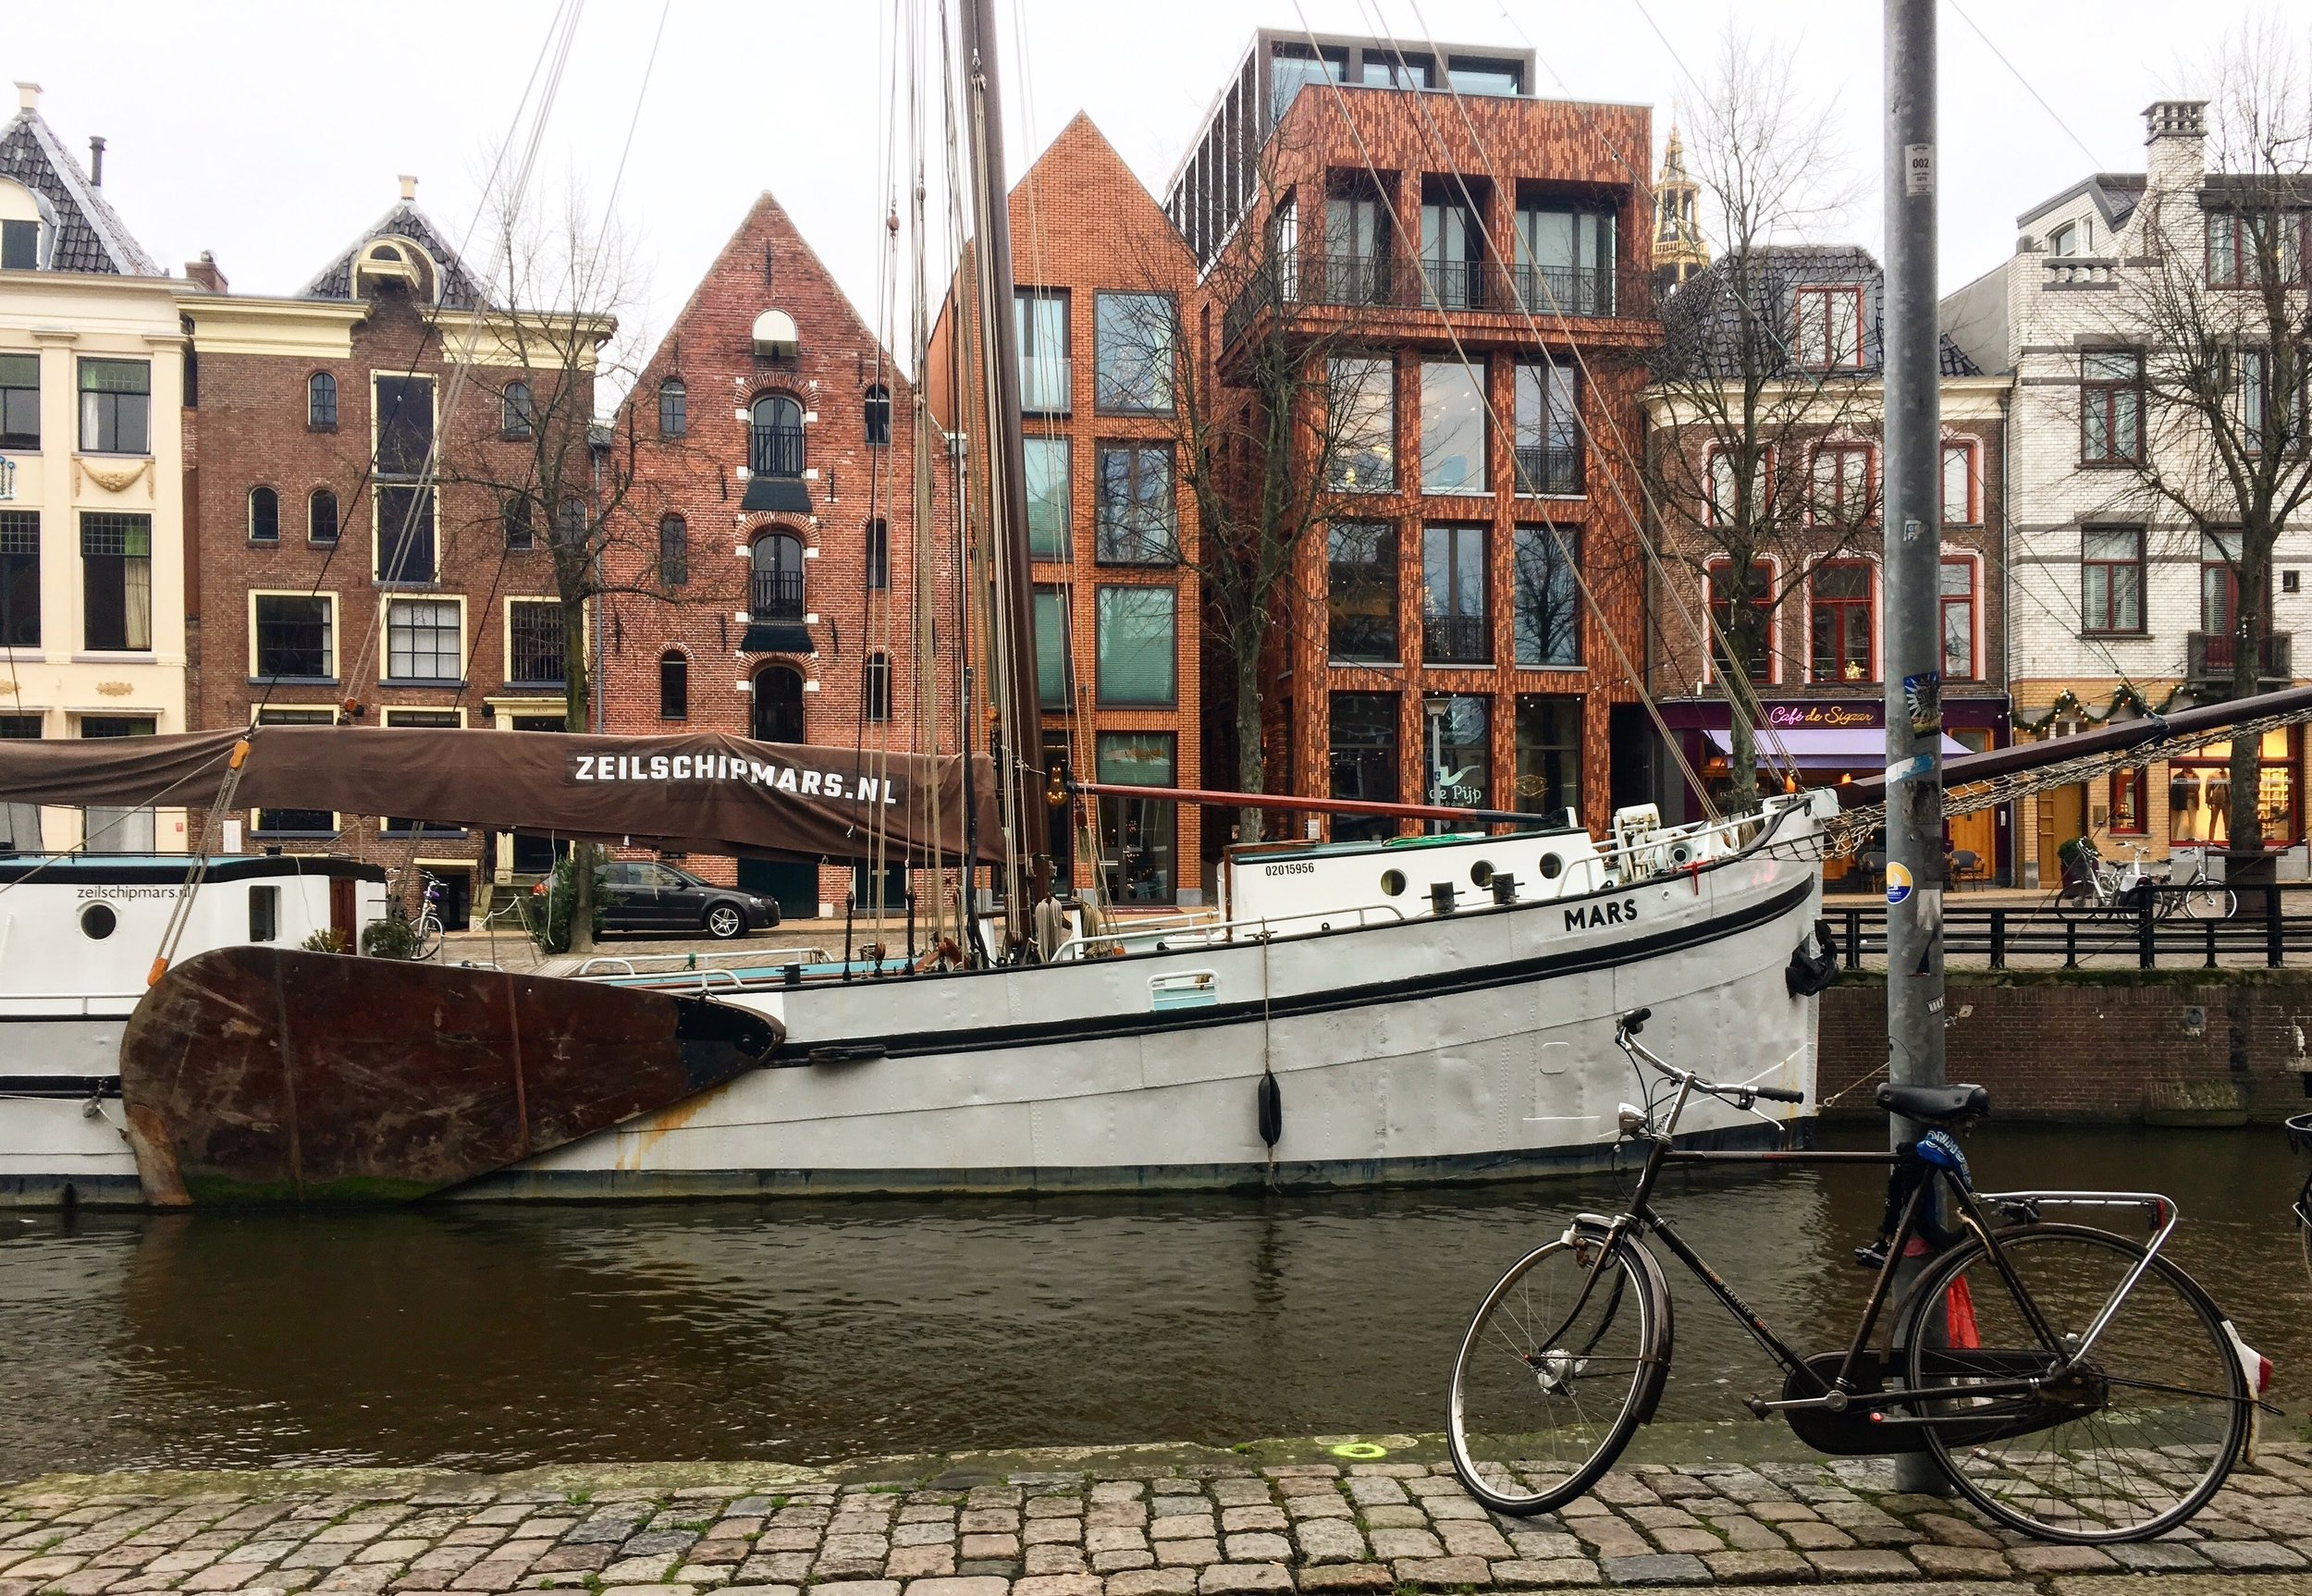 Along the canals in Groningen, Netherlands - the tallest pointed roof building is reception for Hotel Miss Blanche - it is an inviting place that instantly makes you feel welcome.